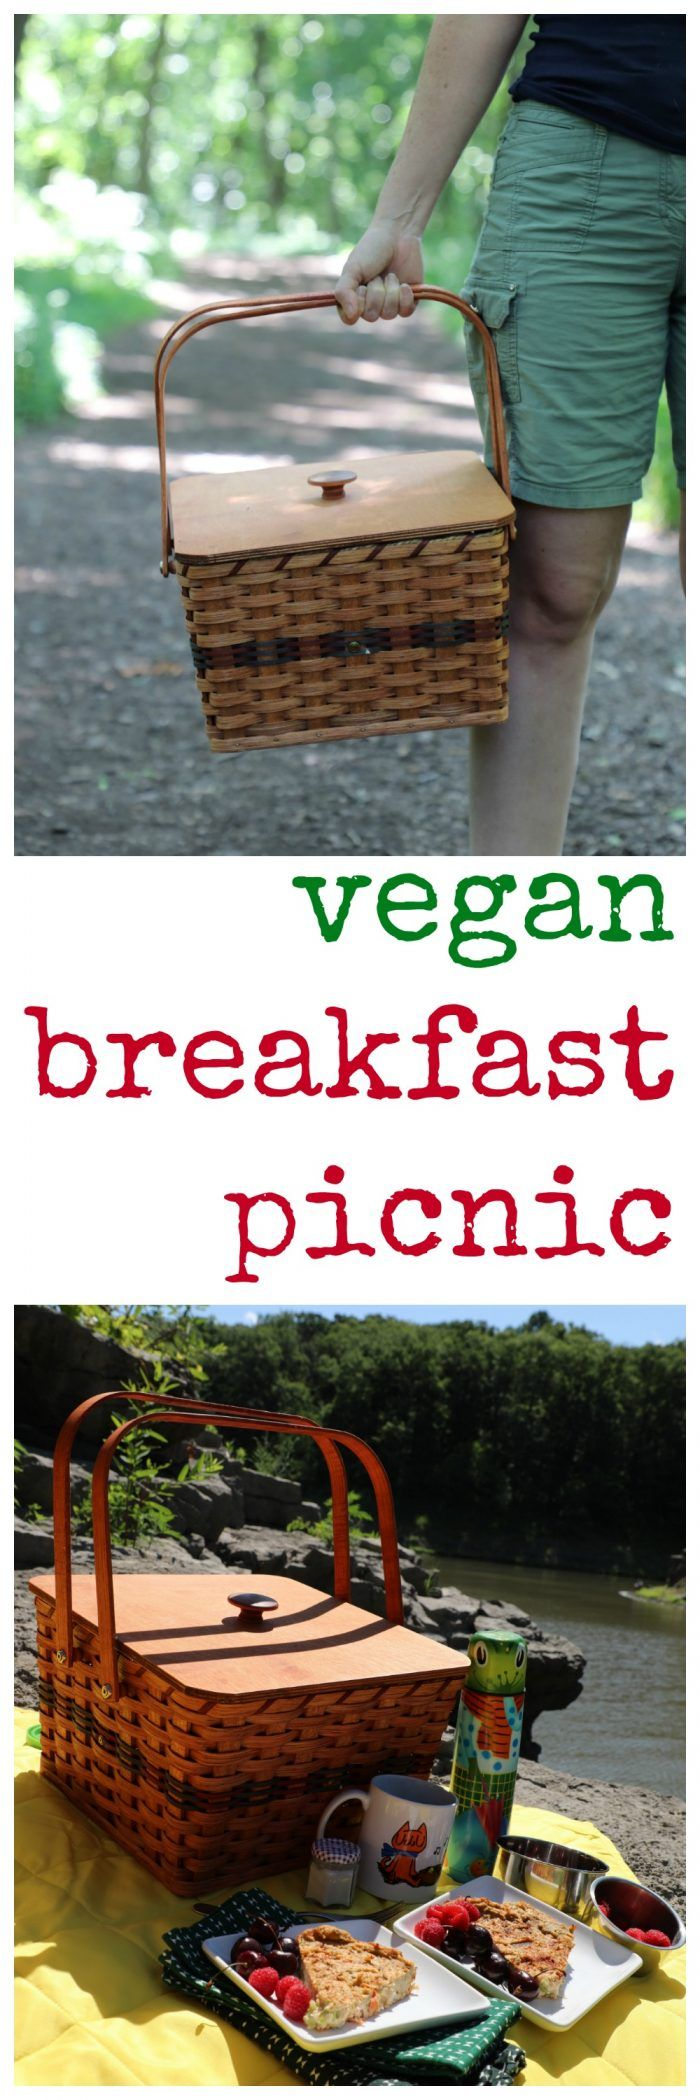 Vegan breakfast picnic: Eggless quiche, berries, cashew milk & coffee.